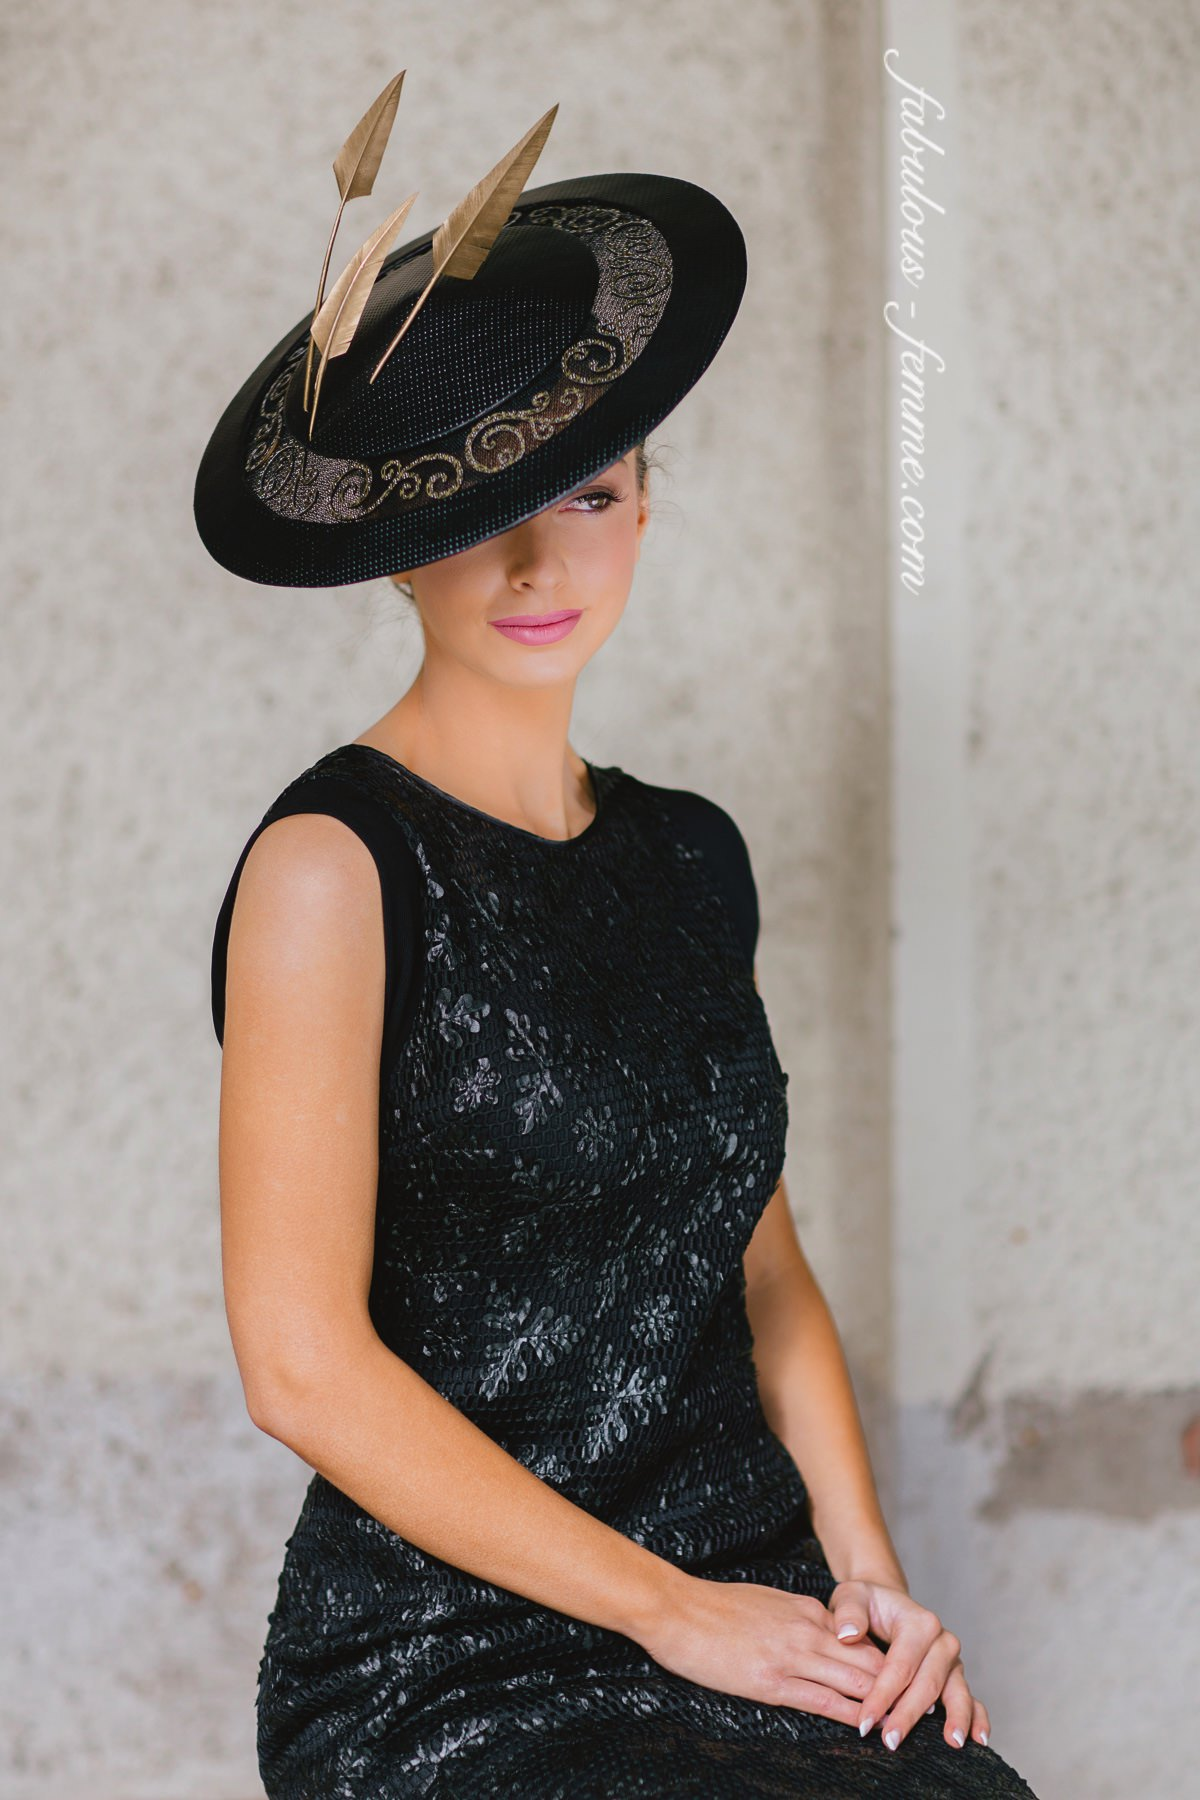 Derby Day - Hats with matching outfit in black and white - new trends